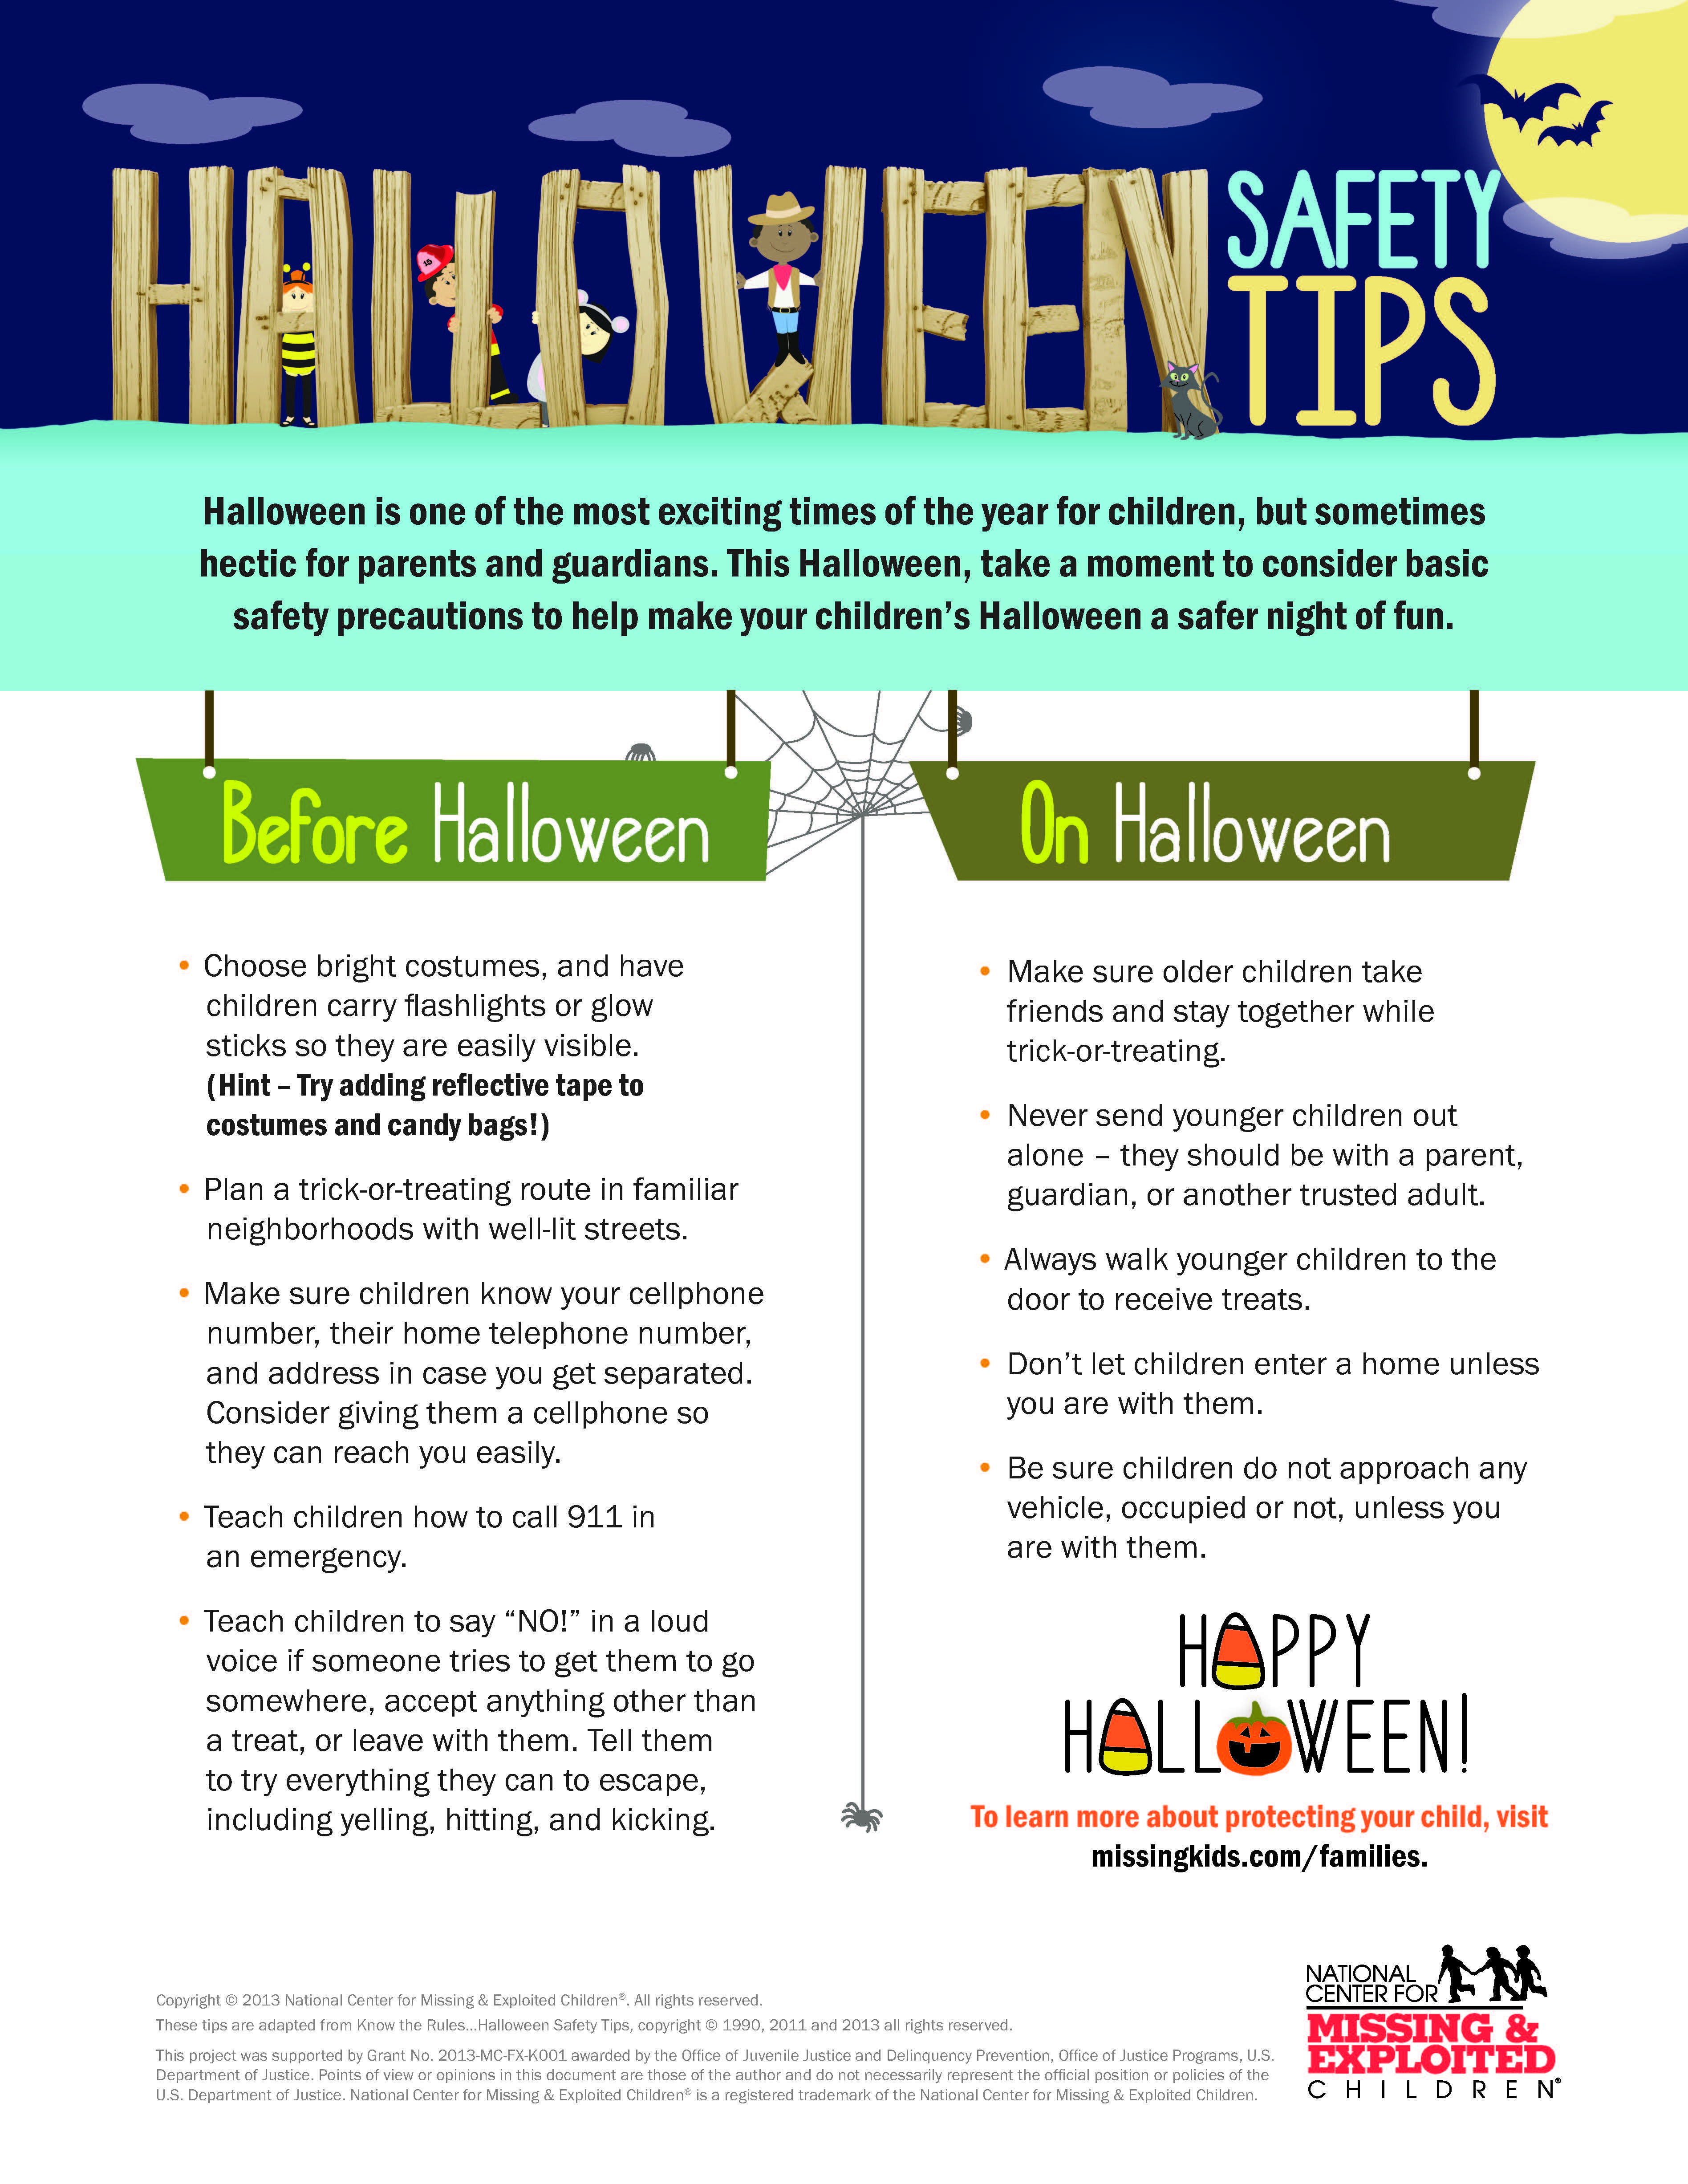 Halloween Safety Tips from NCMEC Halloween safety tips